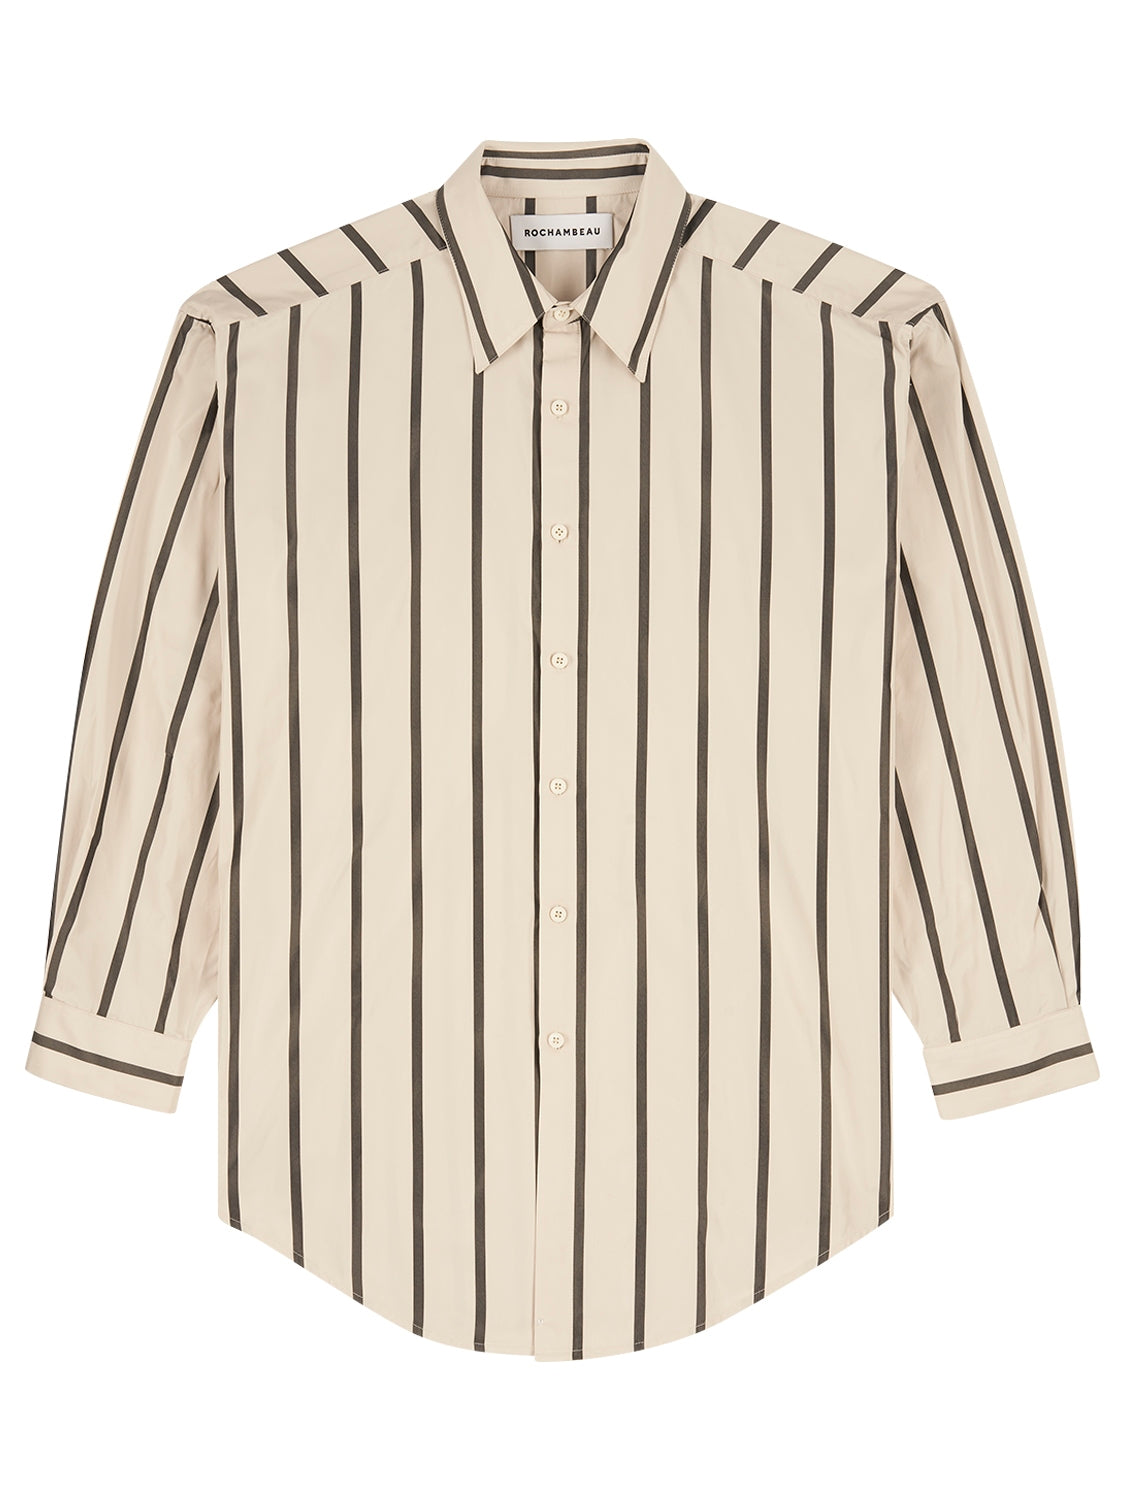 Oversized Shirt - Cream Stripe